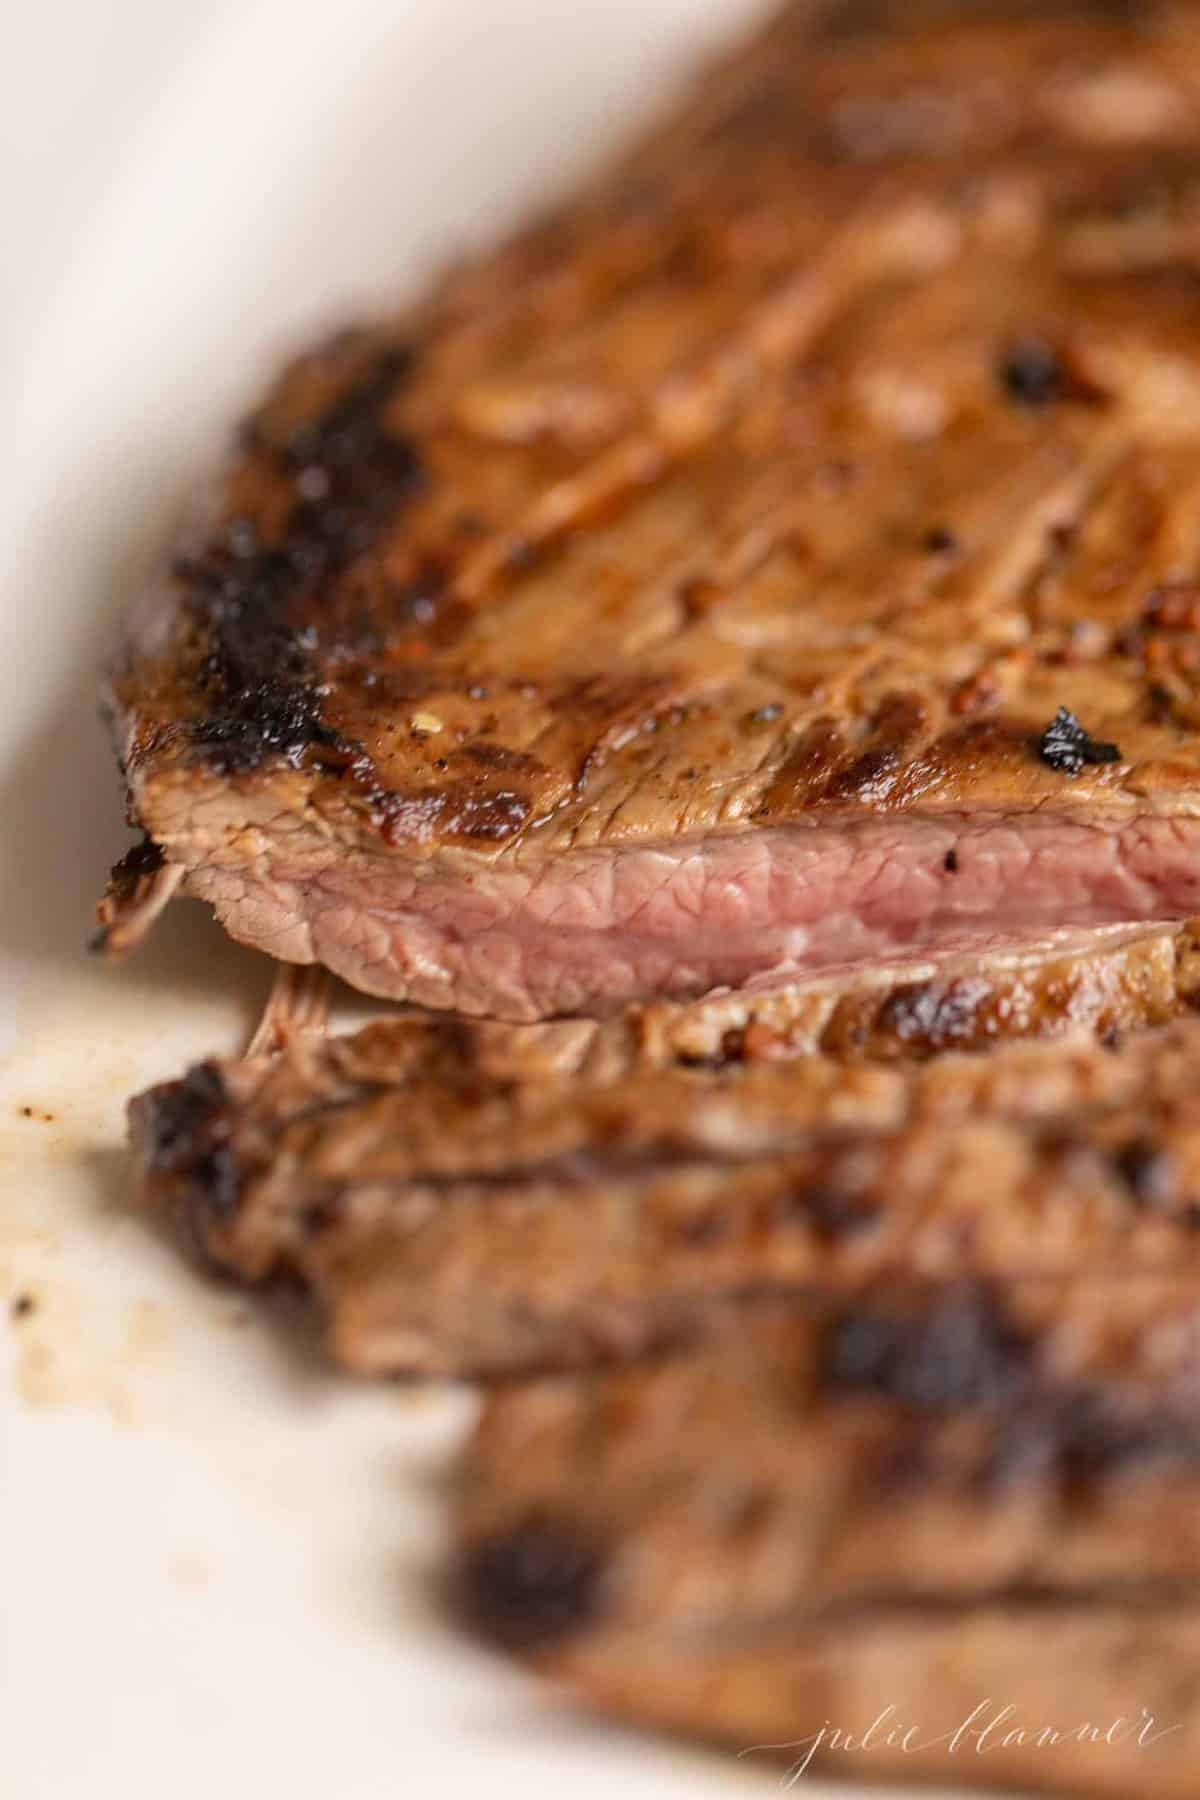 A close up of sliced carne asada steak